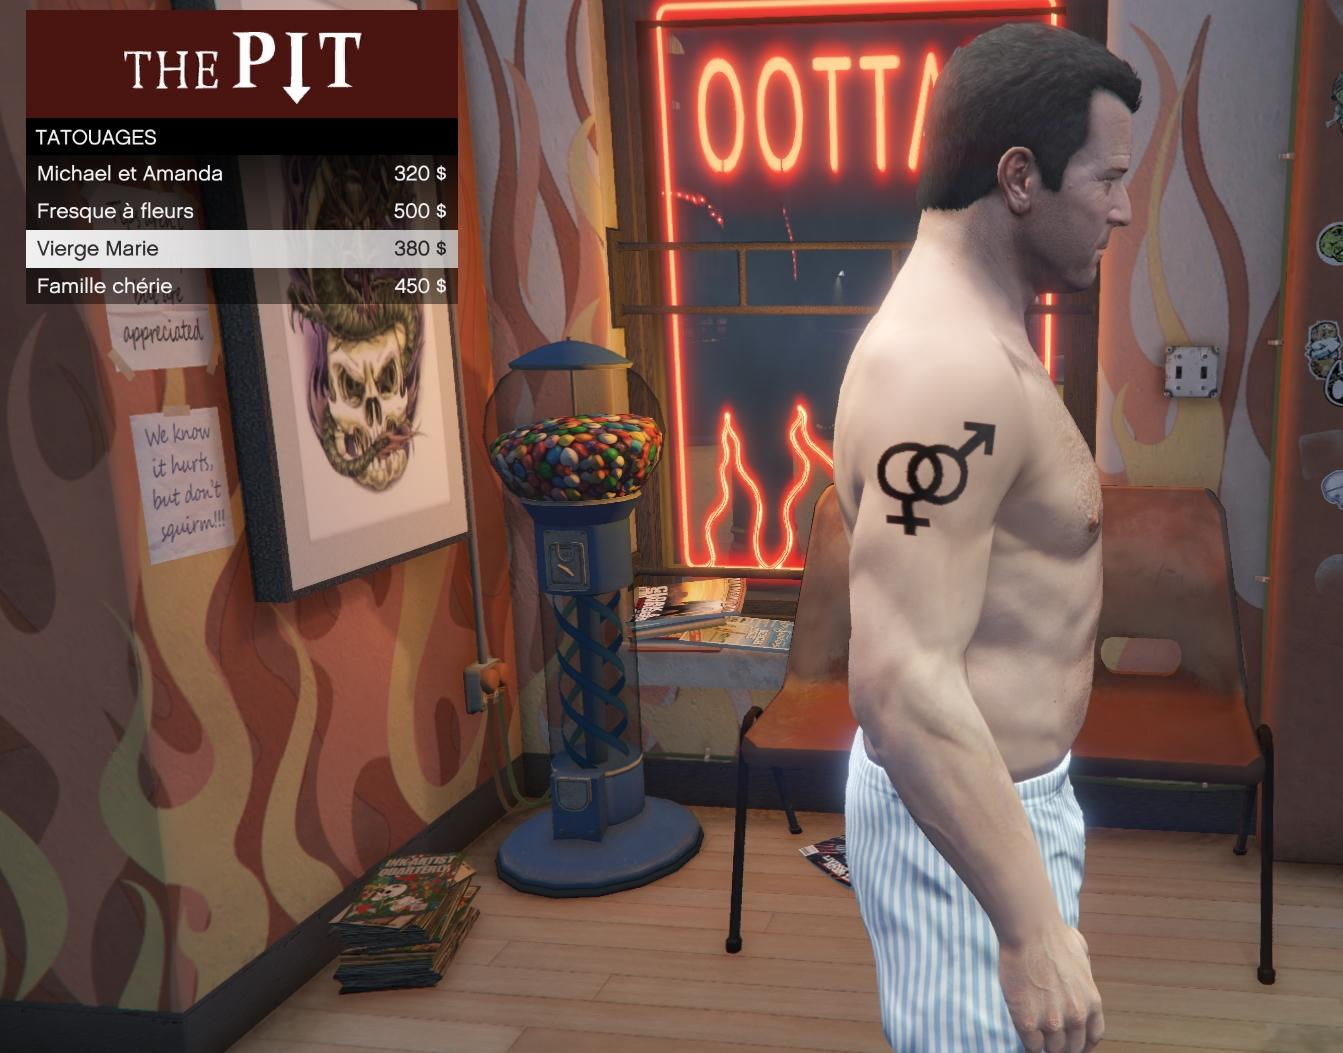 symbole homme femme for michael gta5 mods